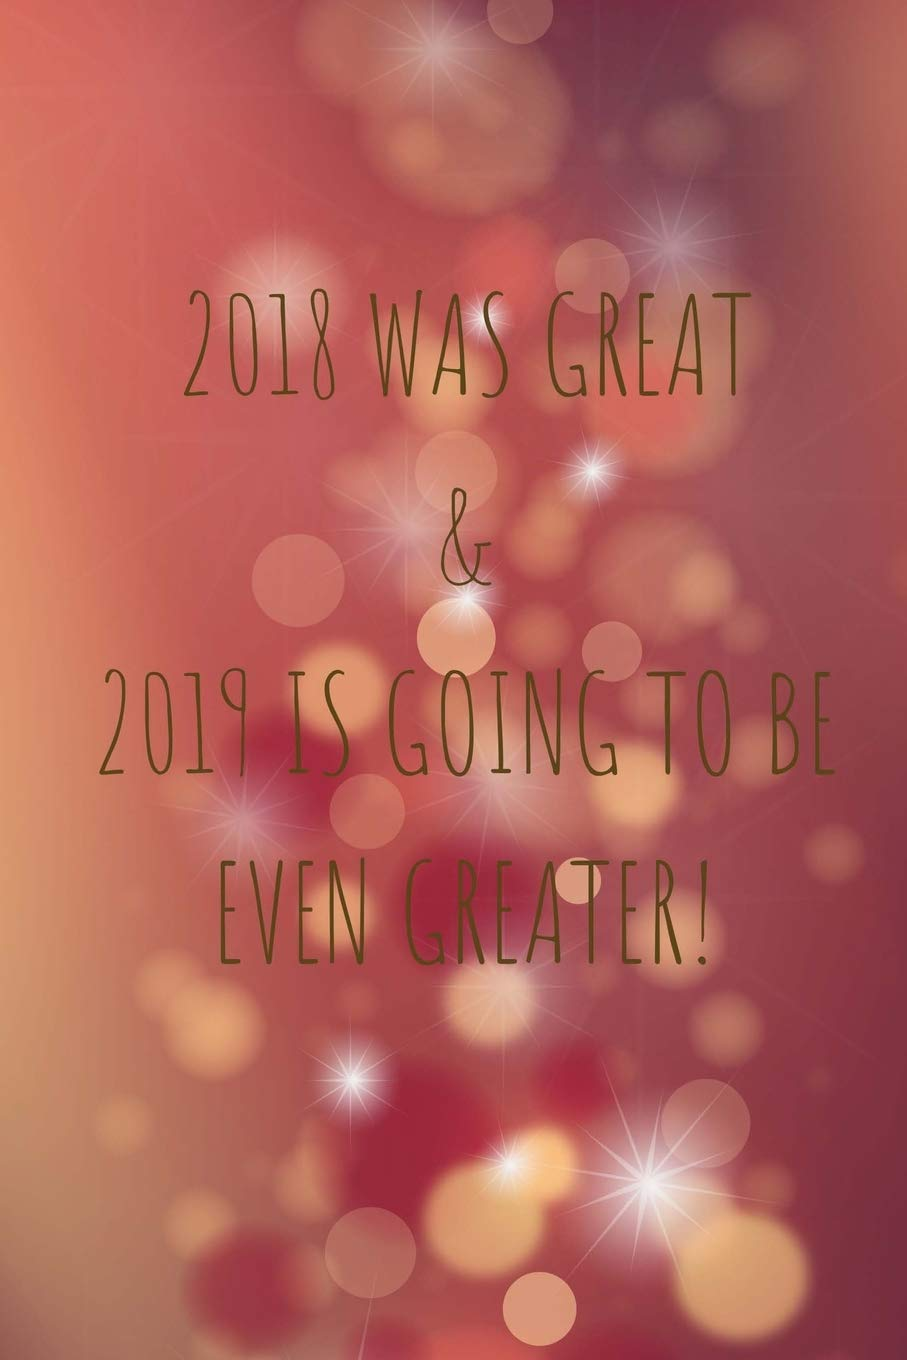 Christmas Even 2019 2018 Was Great & 2019 Is Going To Be Even Greater!: Christmas